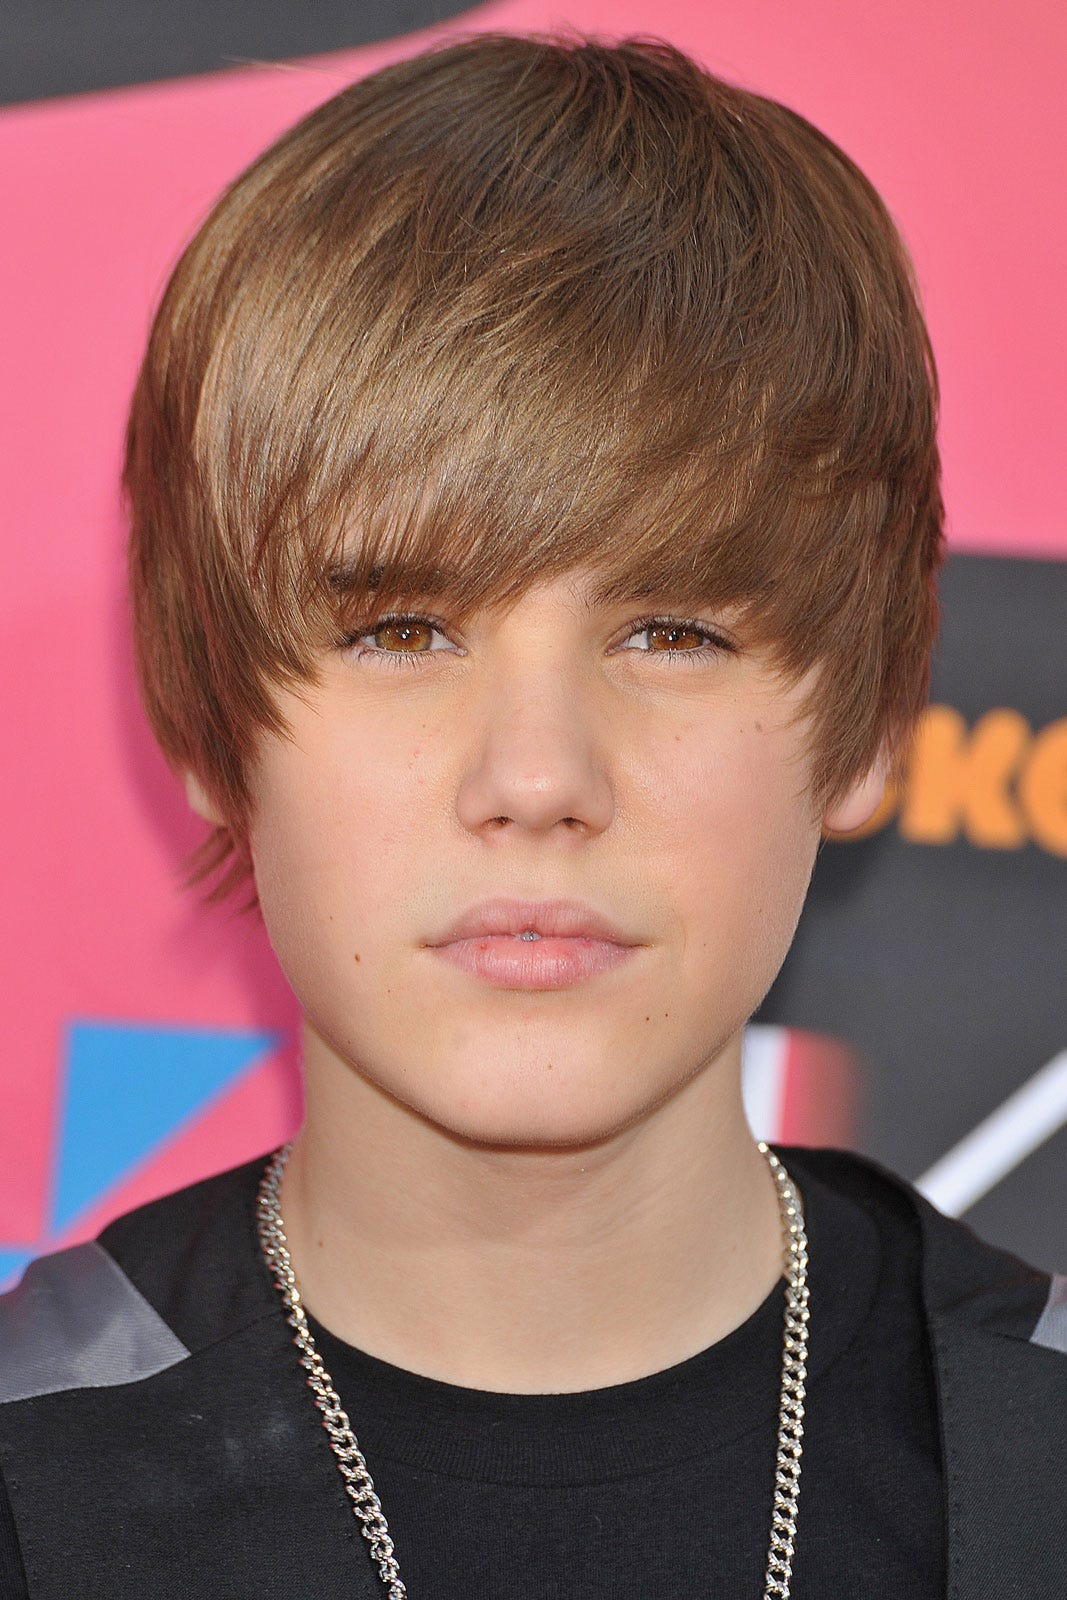 Justin Biebers Hair Has Changed So Much Over The Years